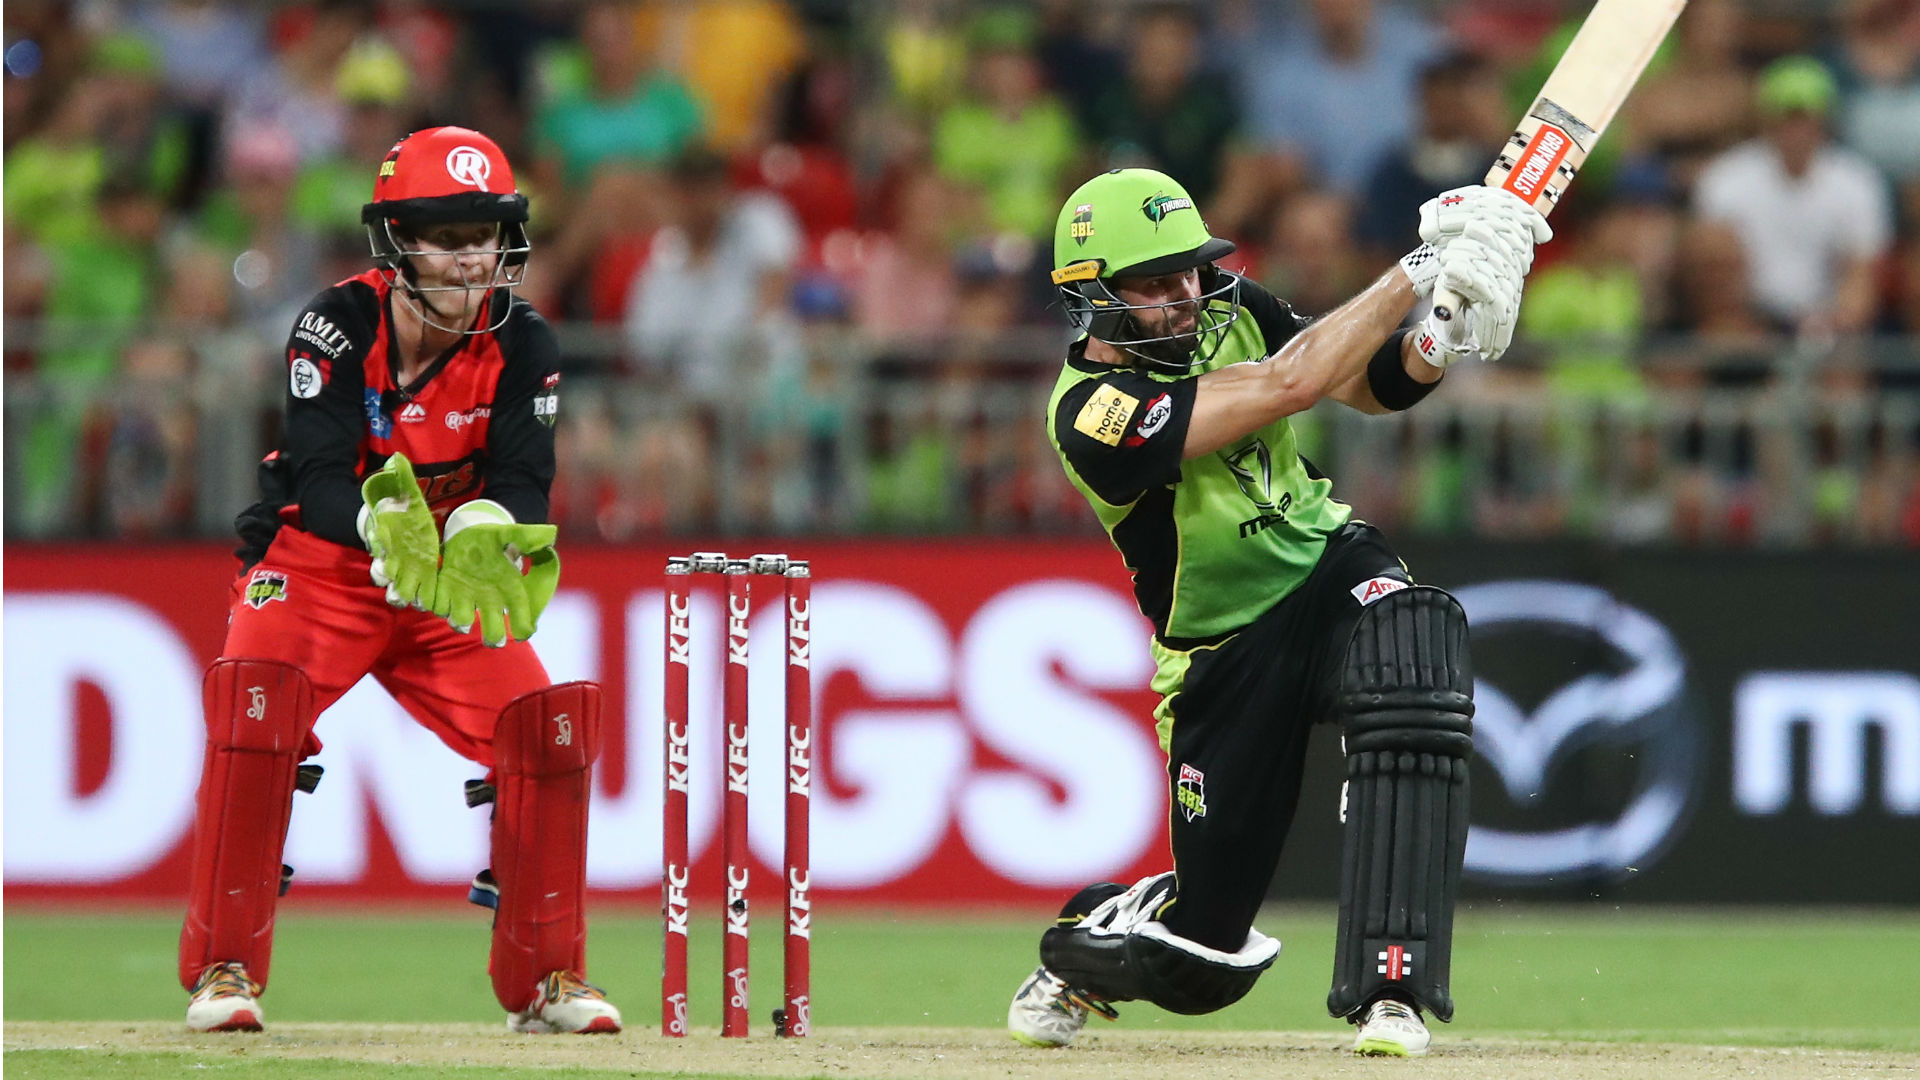 Thunder frustrations continue against Renegades